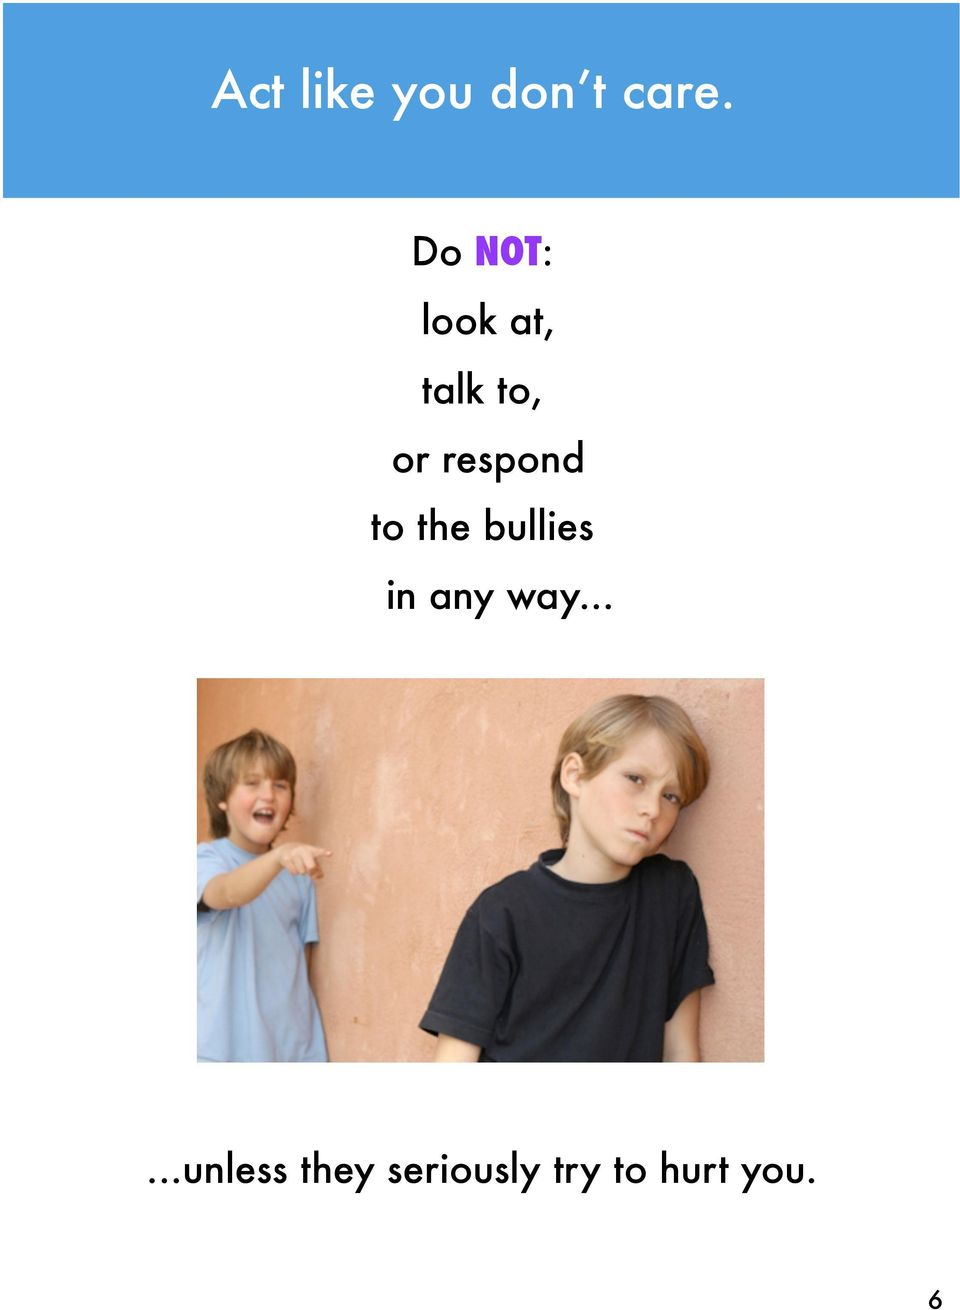 respond to the bullies in any way.